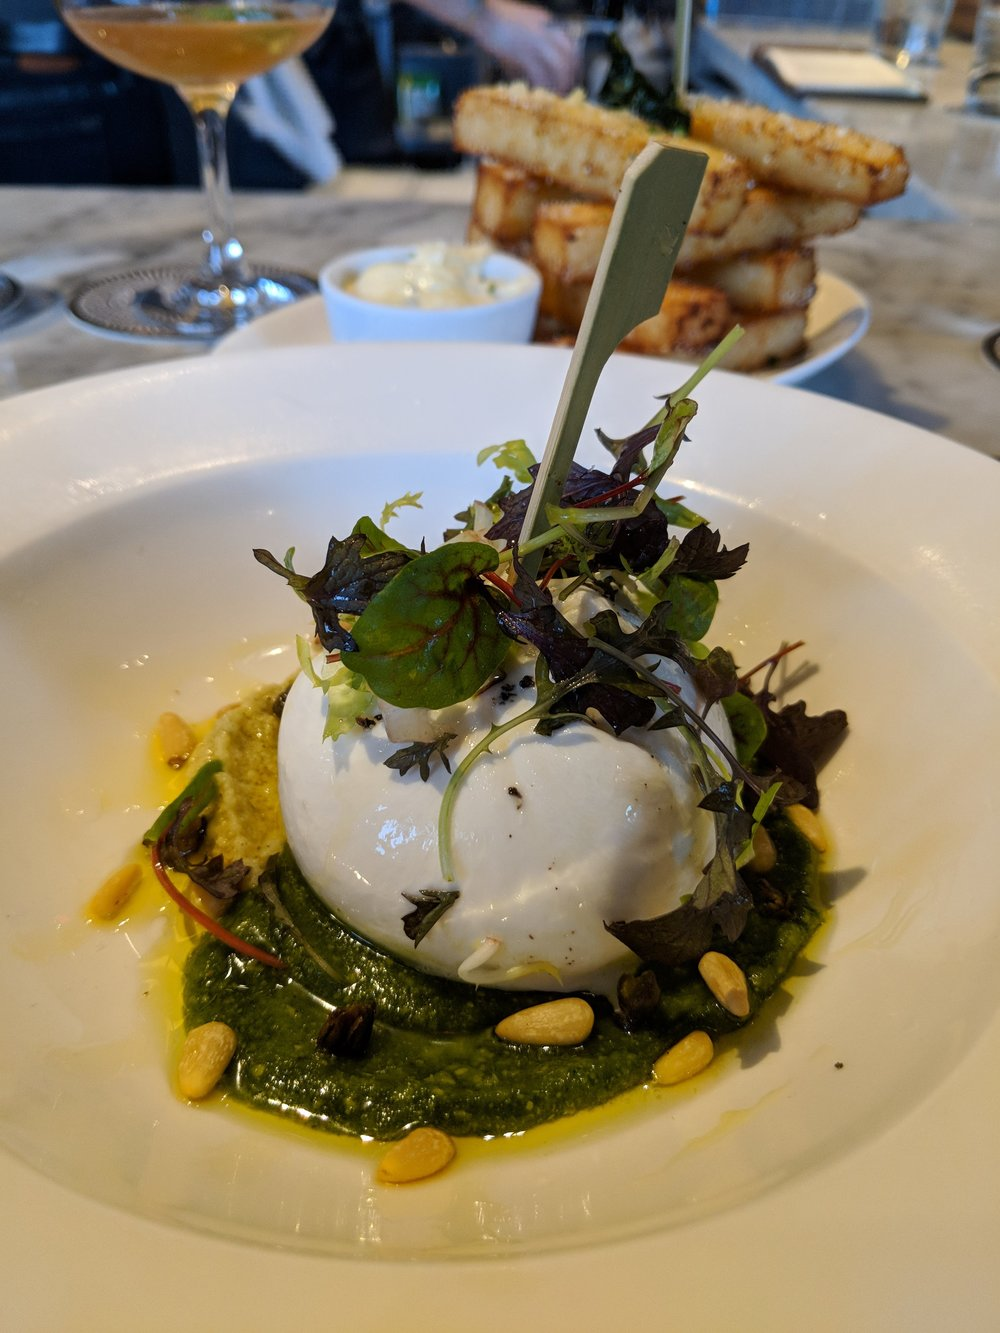 Yummy burrata!